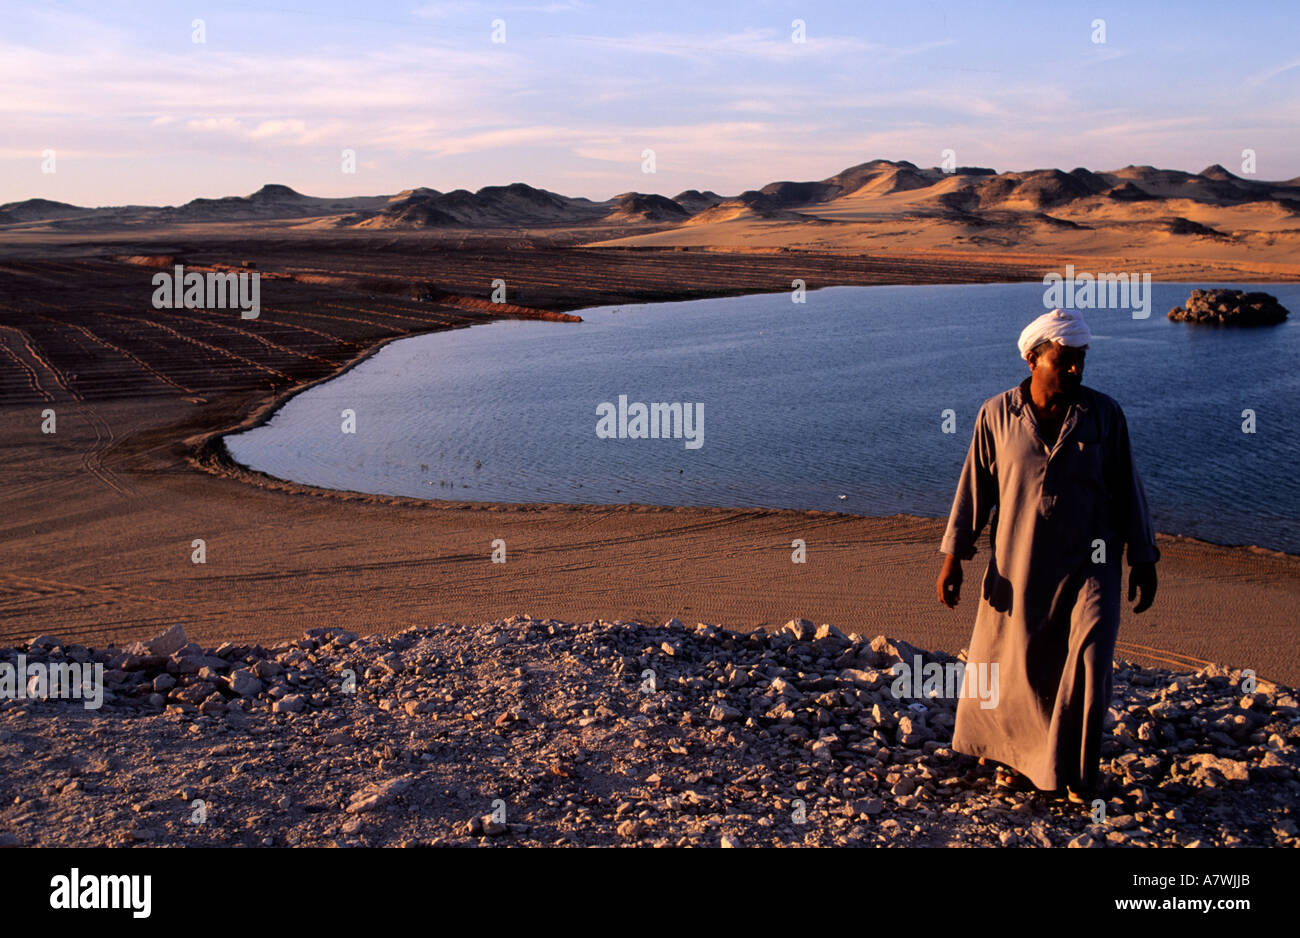 Egypt, Nubia, Lake Nasser, Dakka area - Stock Image